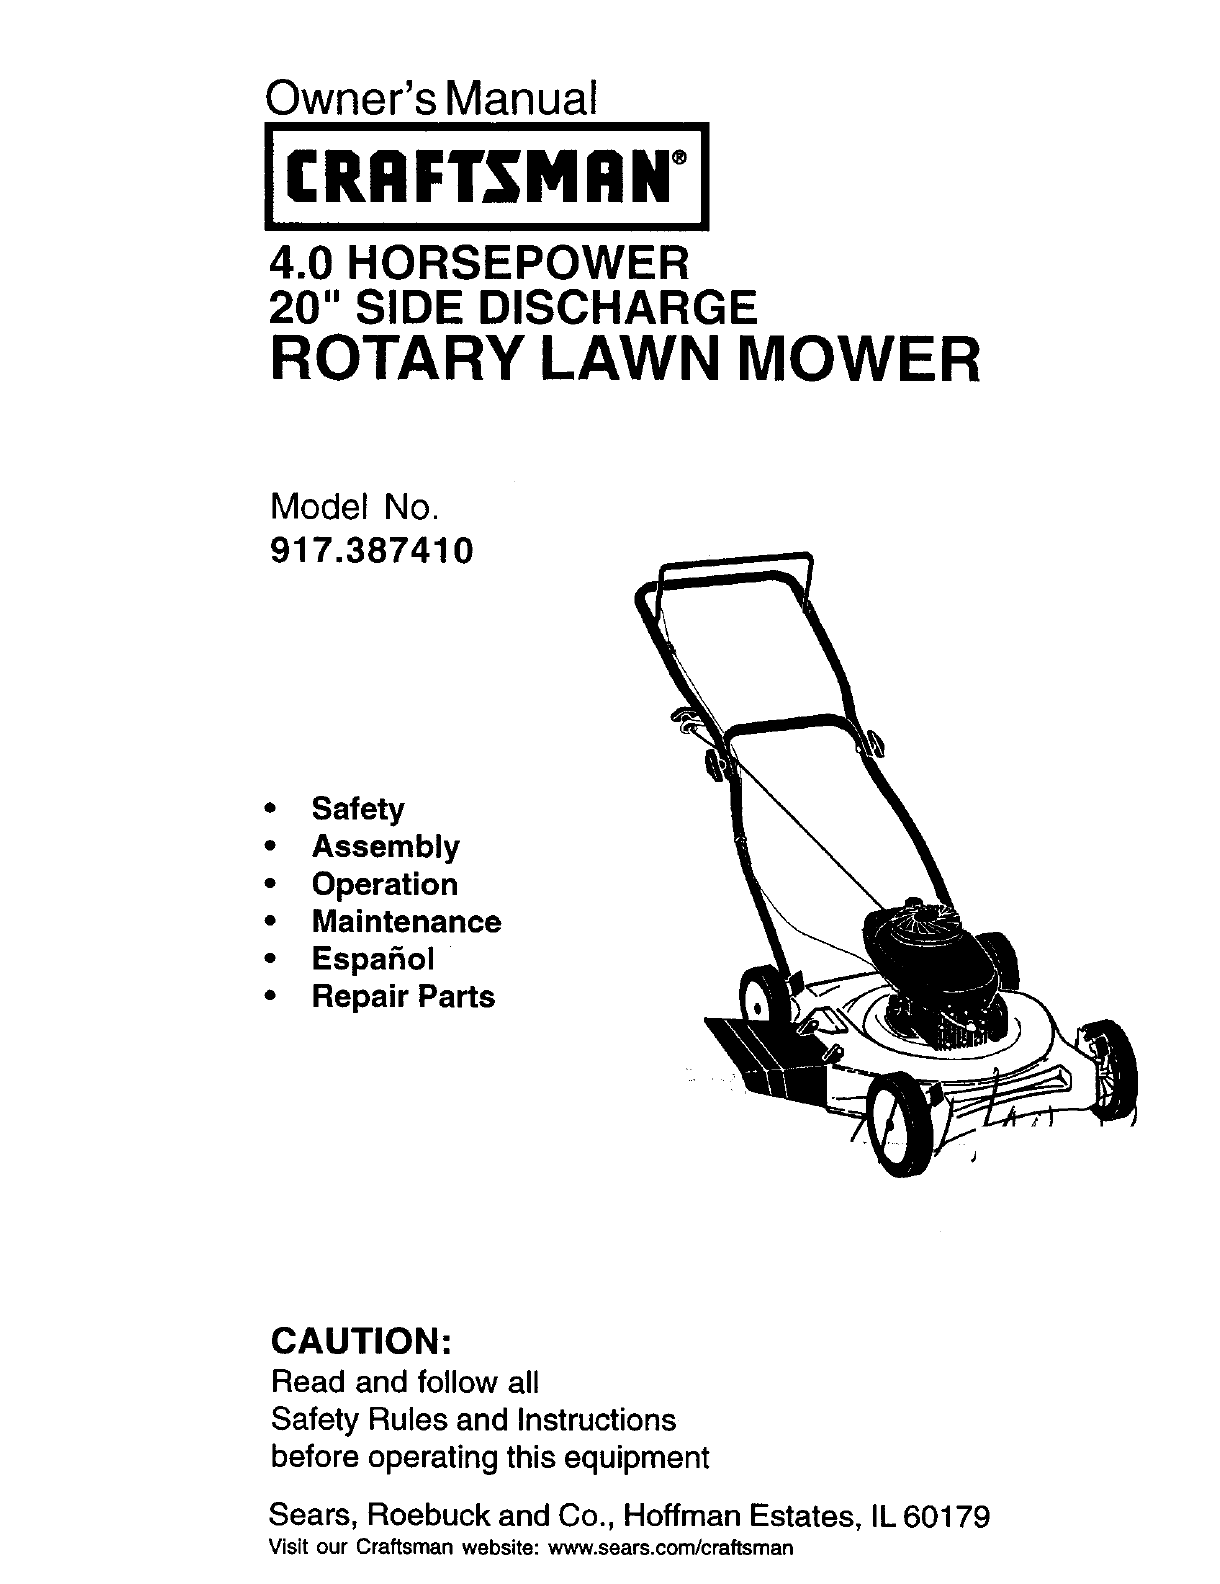 Craftsman Model 917 Push Mower : Craftsman lawn mower  user guide manualsonline